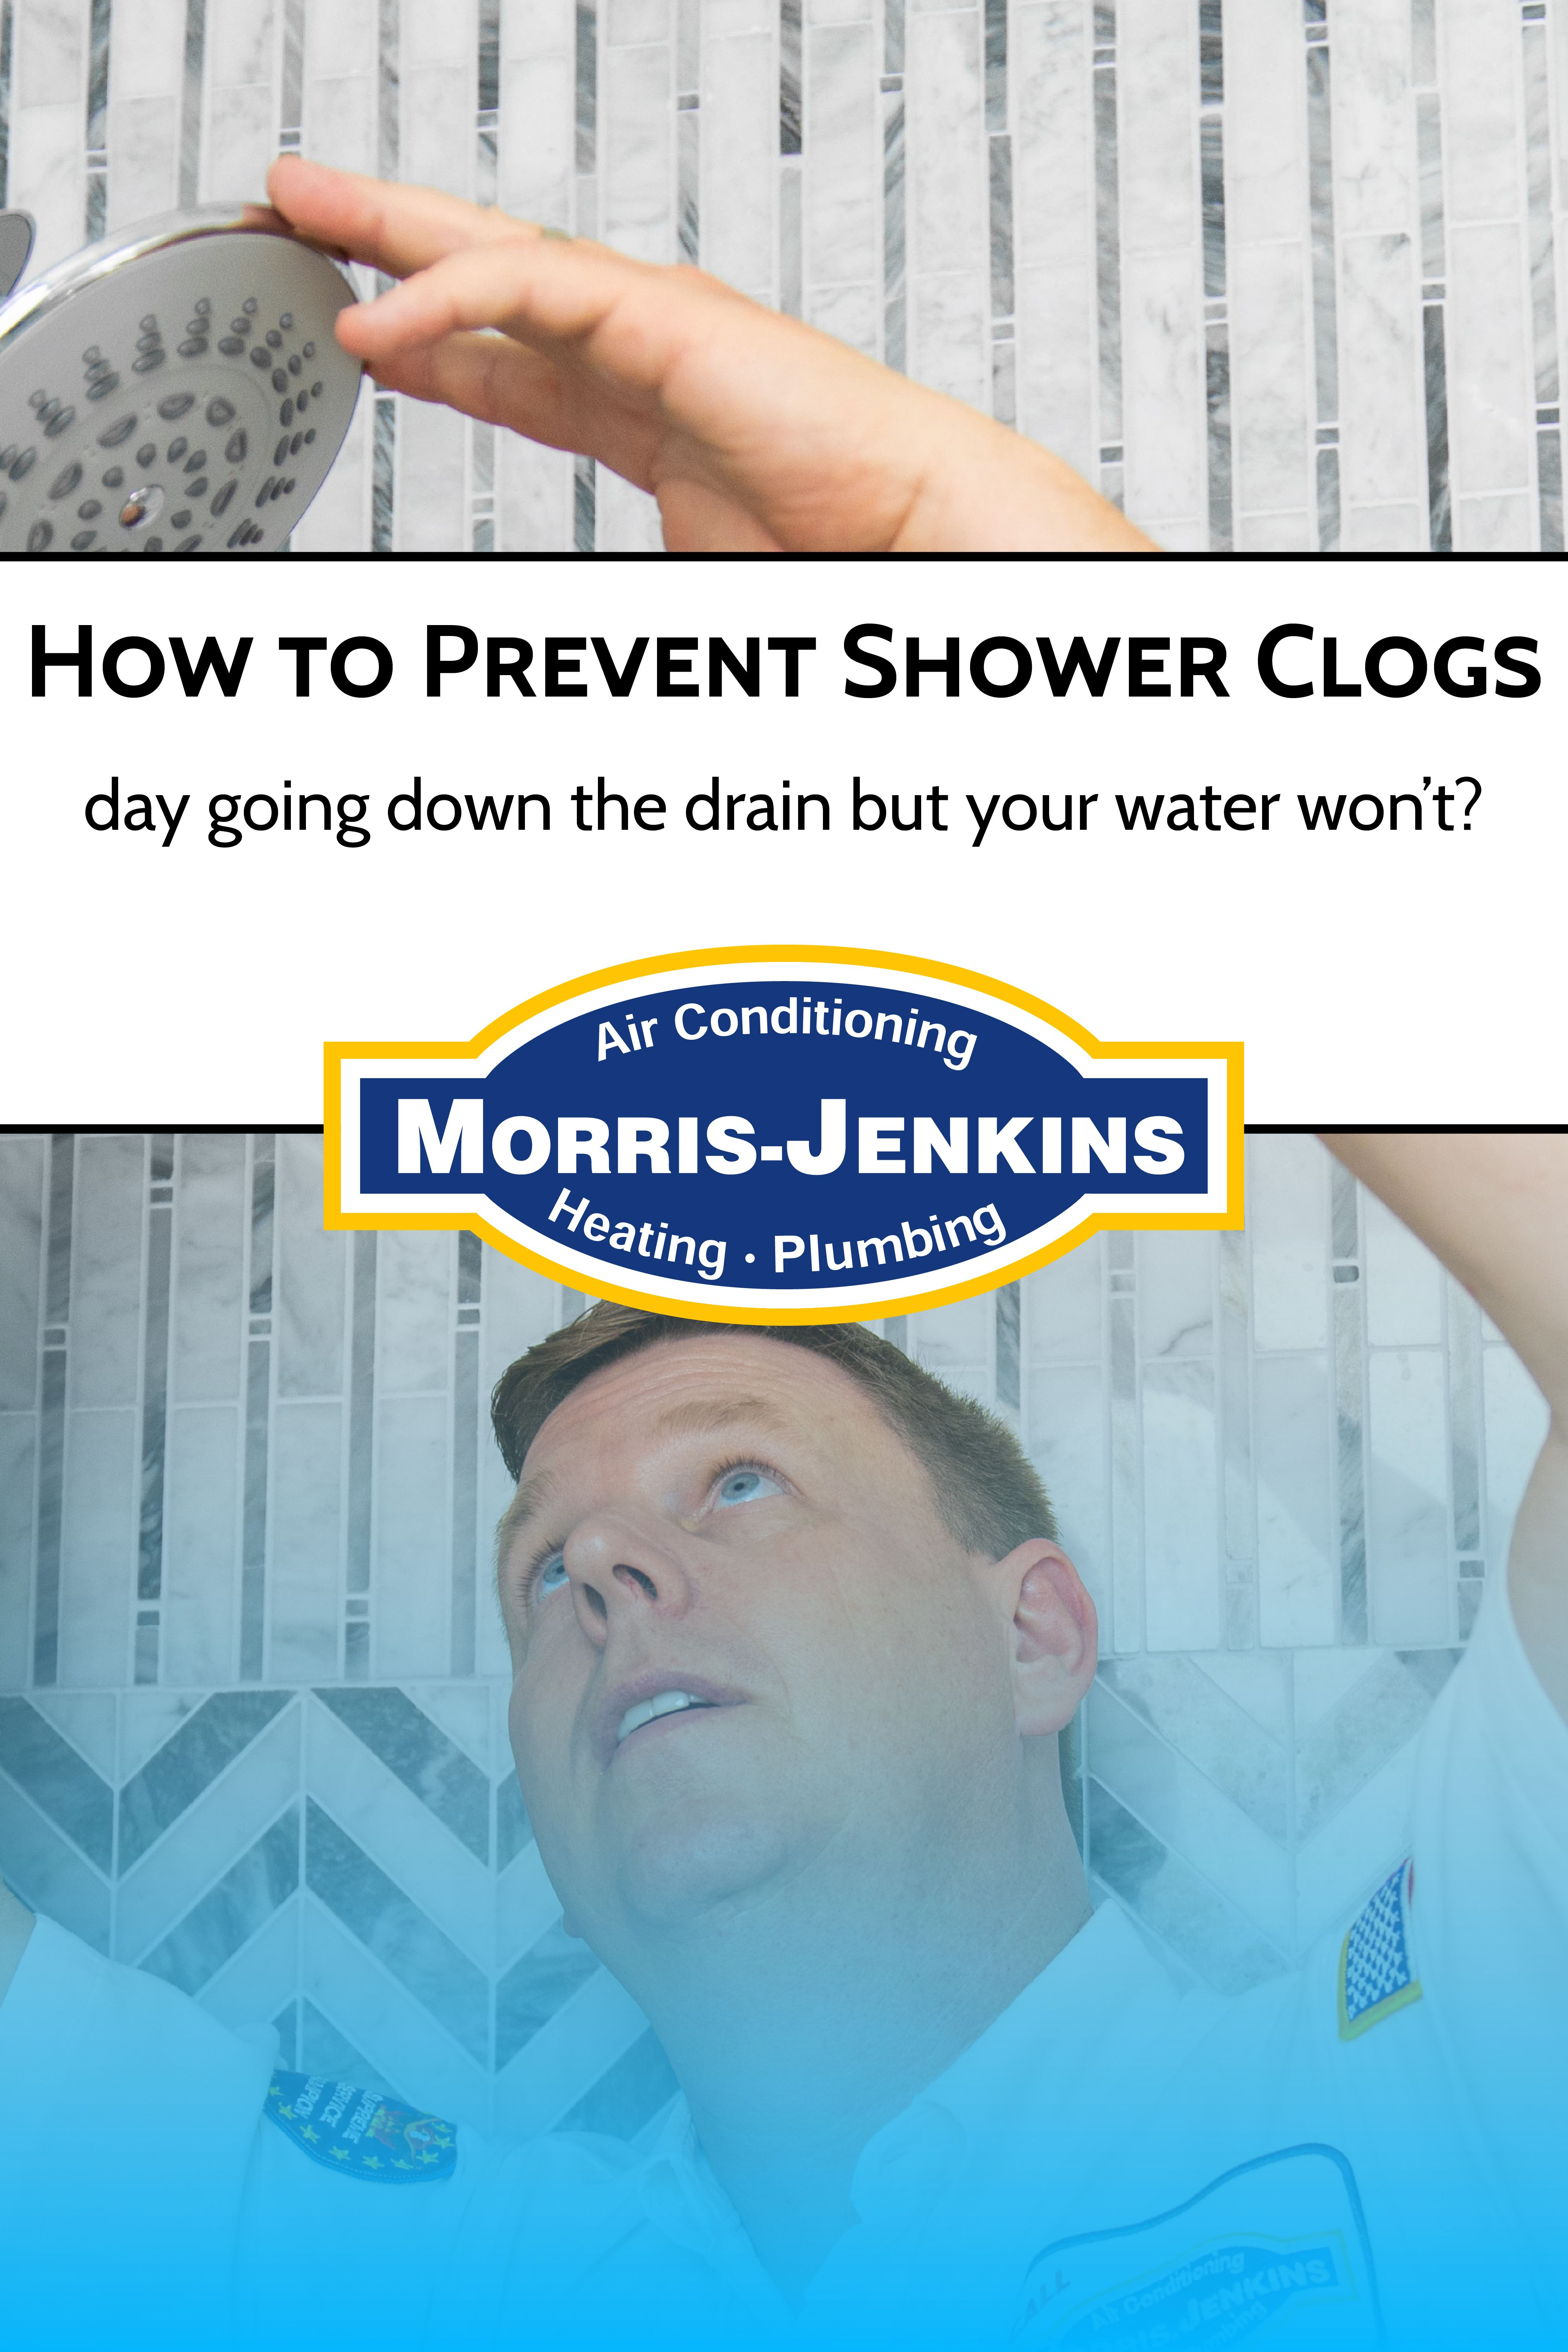 How To Prevent Shower Clogs In 2020 Have A Shower Shower